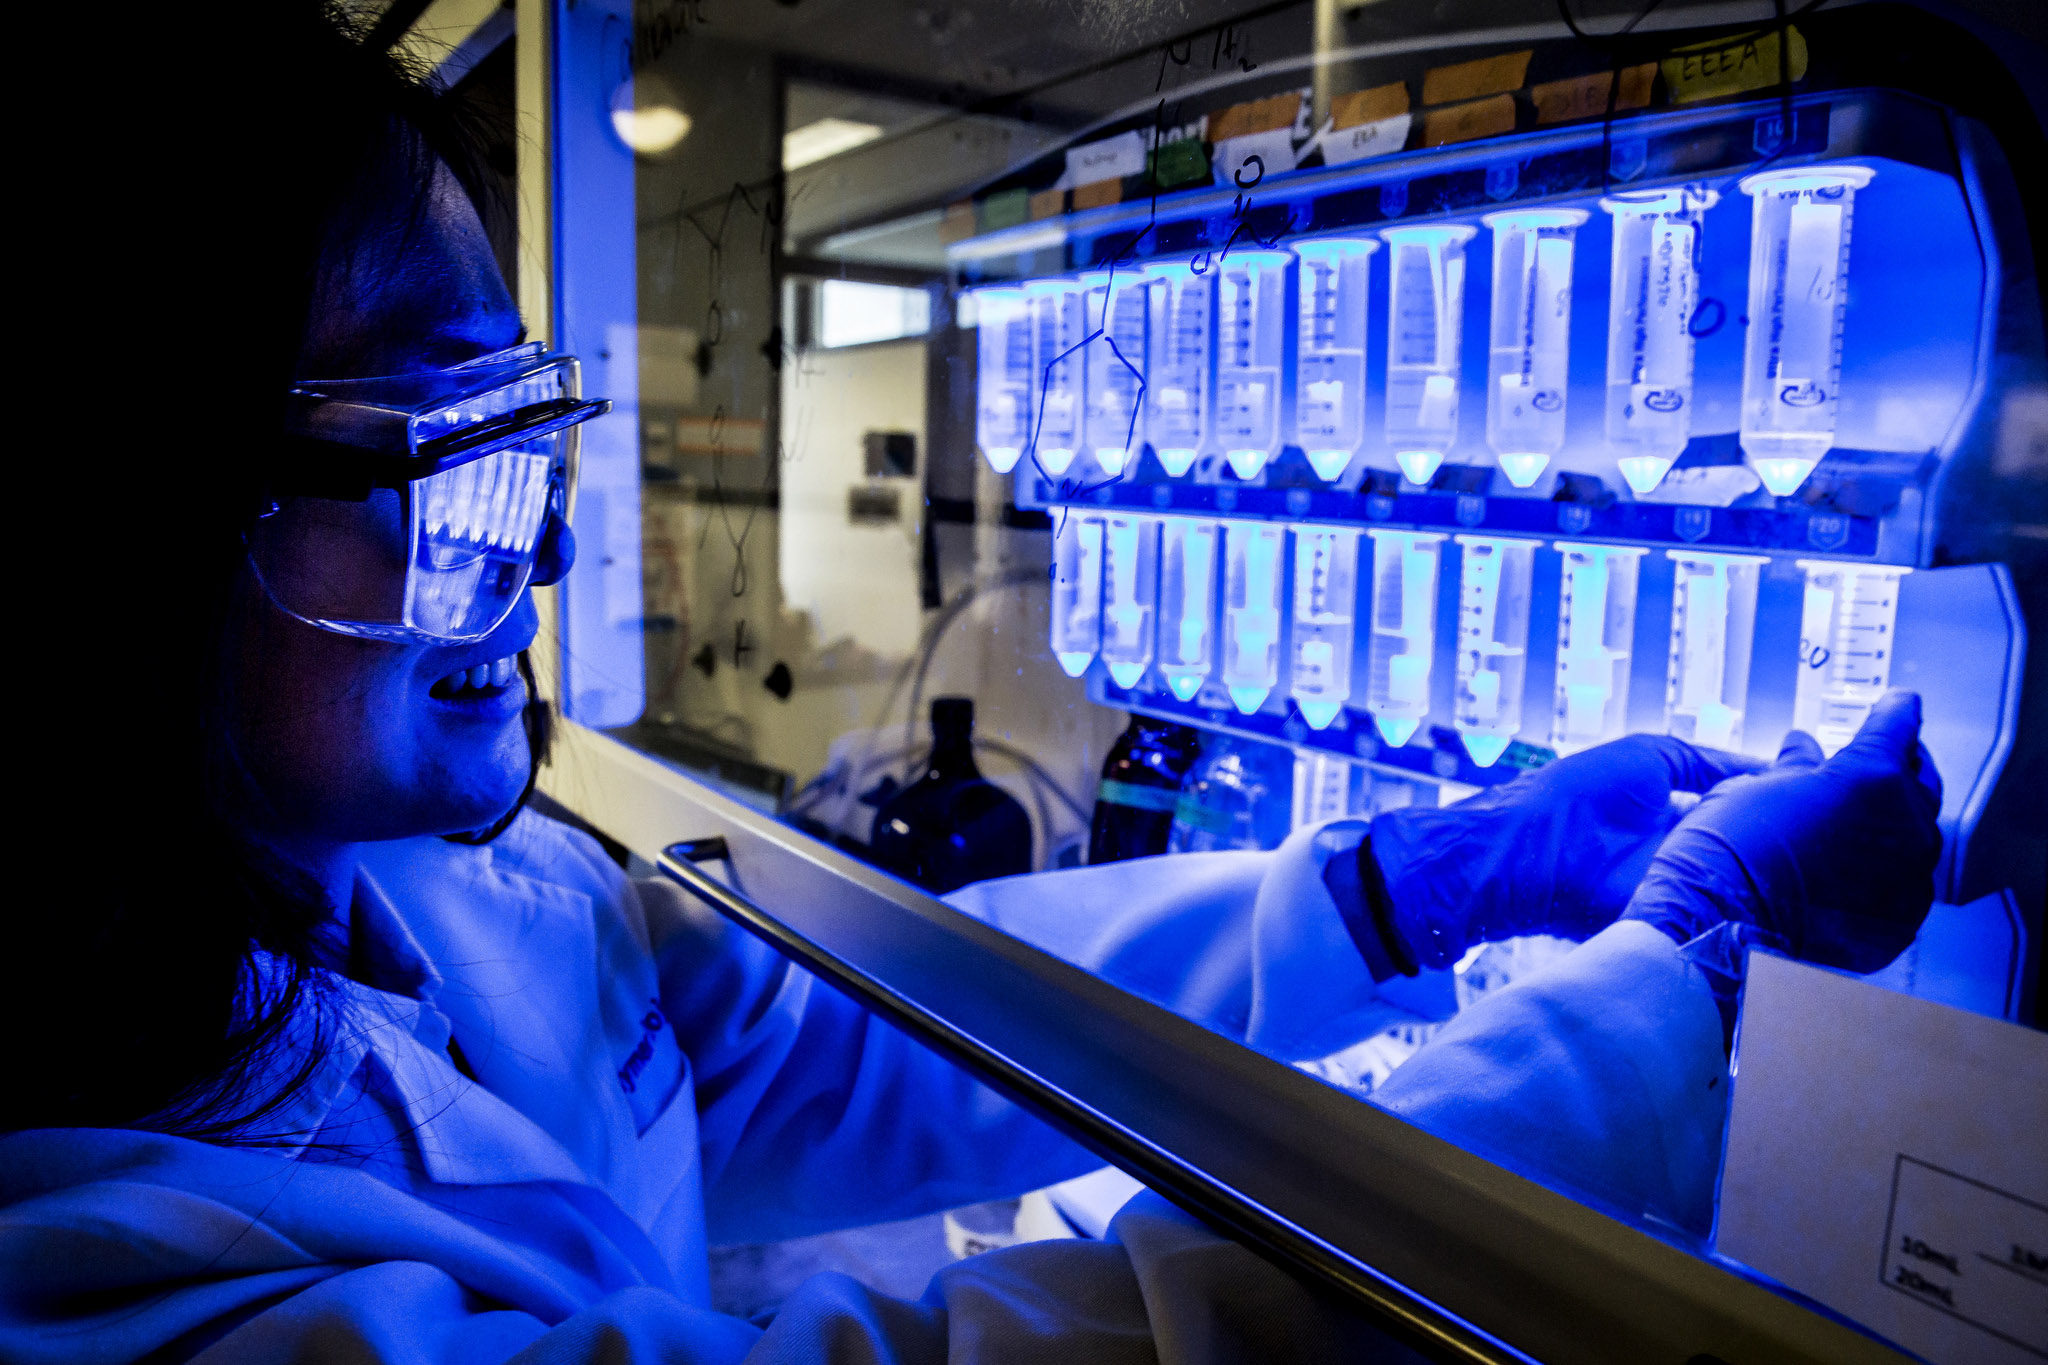 A photograph of Tao Wei, ChE PhD Student, synthesizing proteins in the lab.